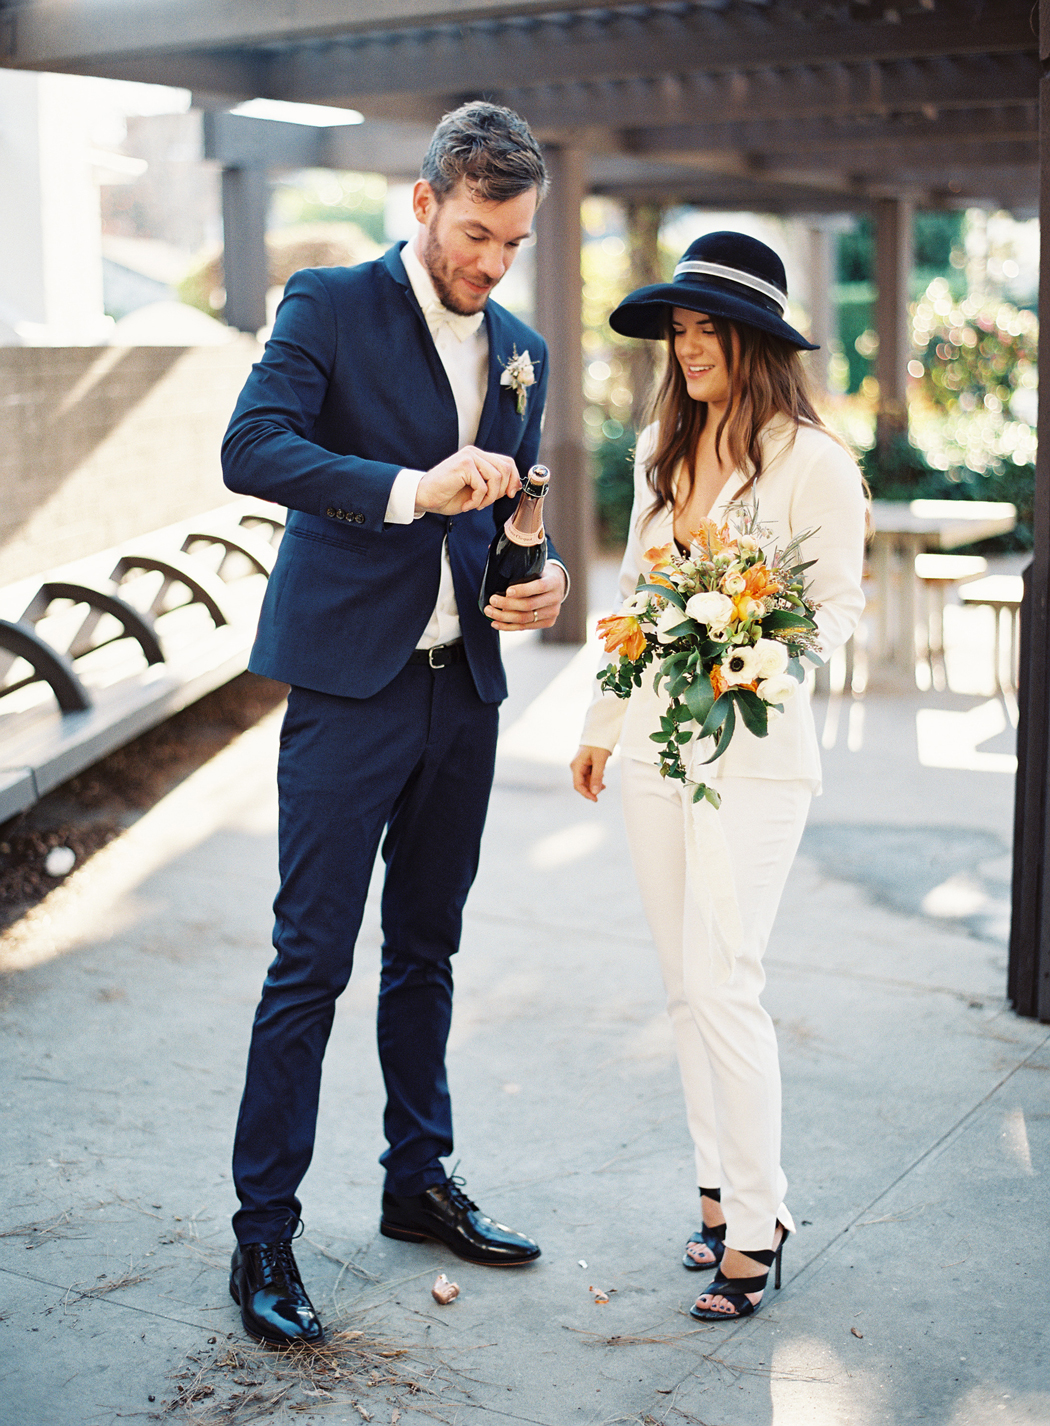 bride wearing white wedding suit standing with groom wearing navy suit